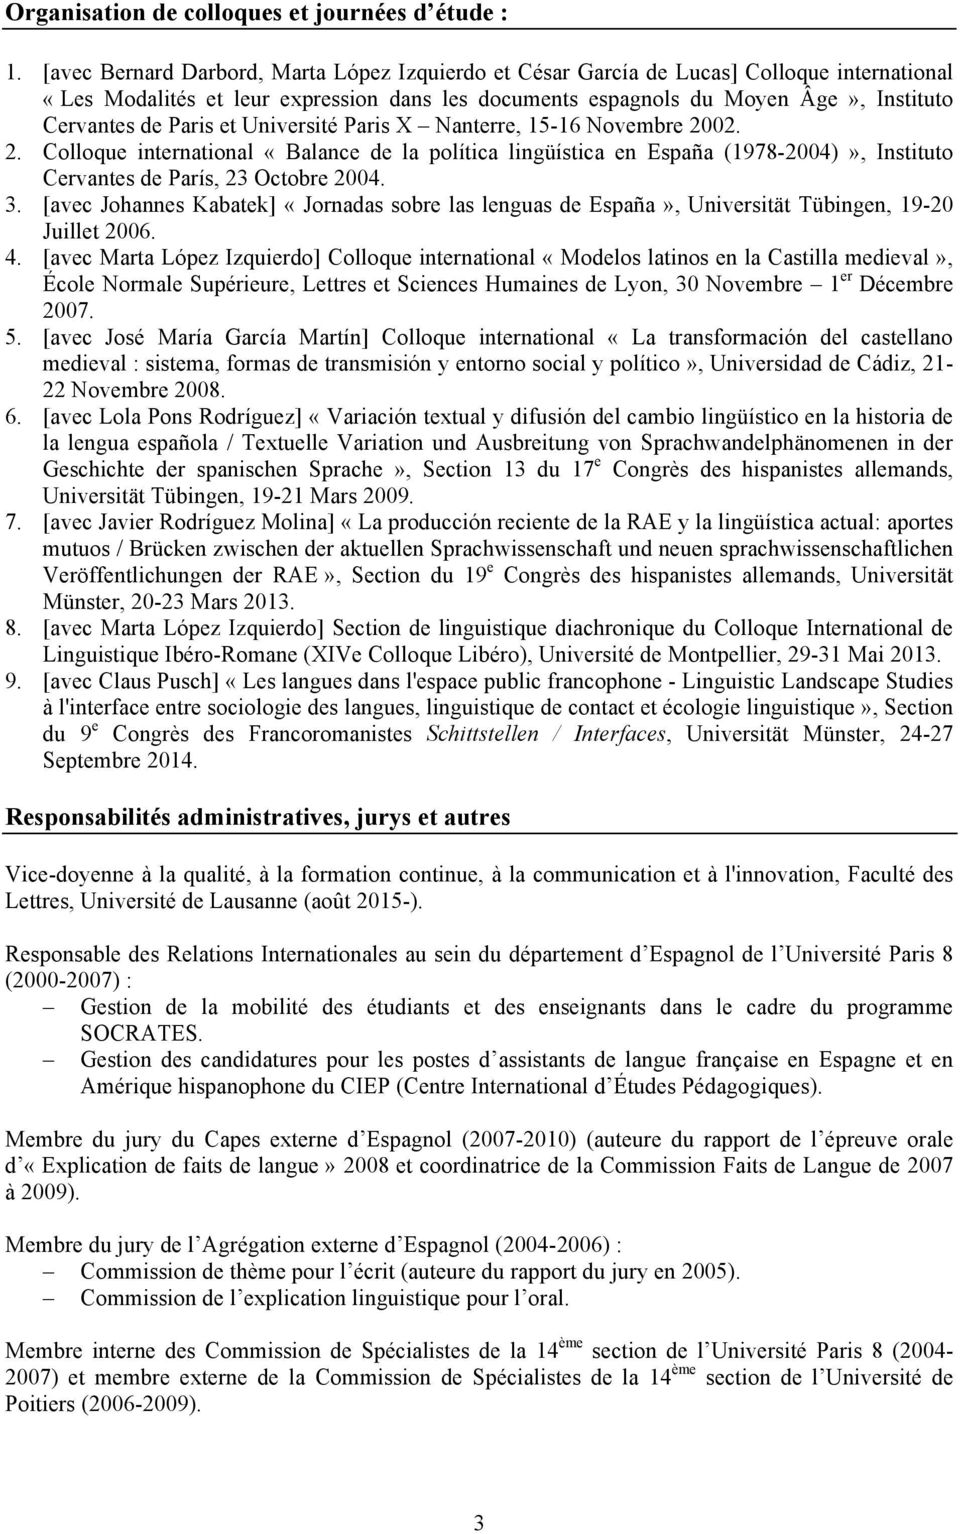 Paris et Université Paris X Nanterre, 15-16 Novembre 2002. 2. Colloque international «Balance de la política lingüística en España (1978-2004)», Instituto Cervantes de París, 23 Octobre 2004. 3.